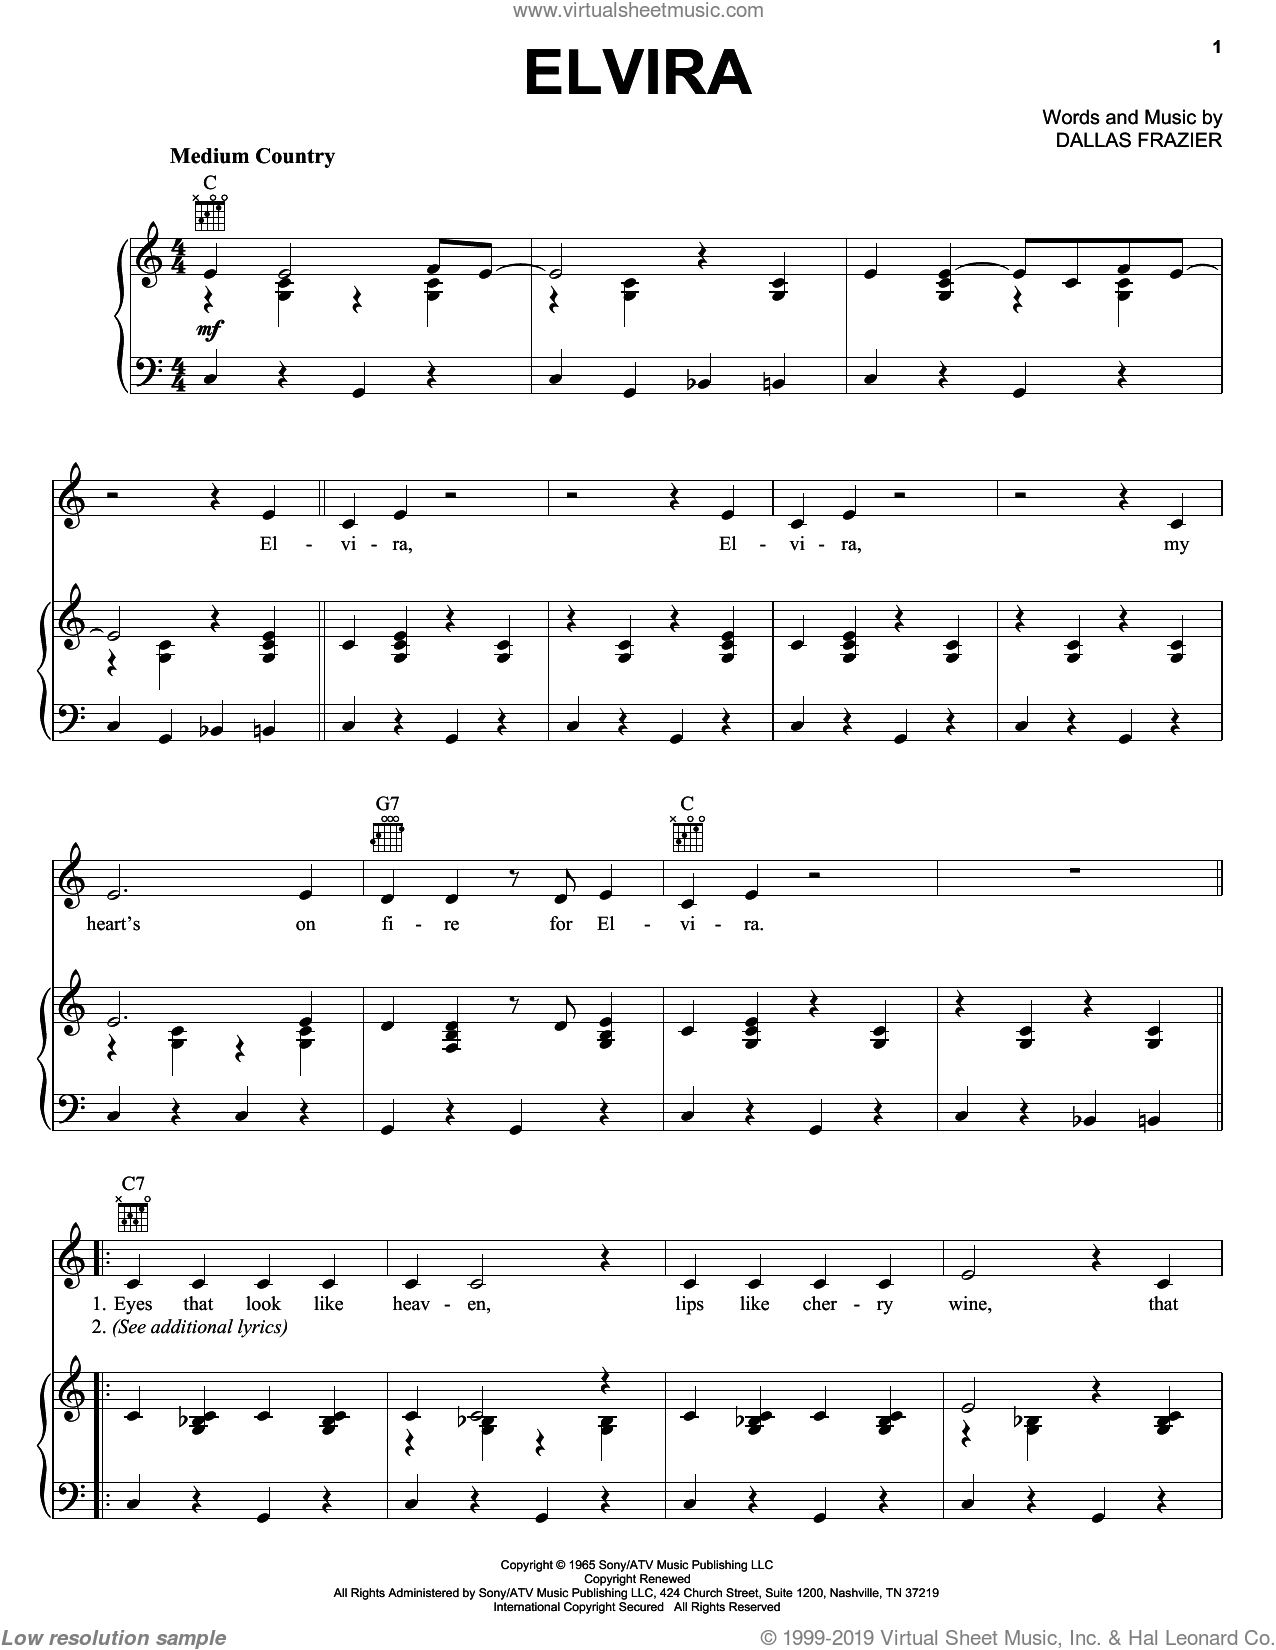 Elvira sheet music for voice, piano or guitar by Oak Ridge Boys and Dallas Frazier, intermediate skill level